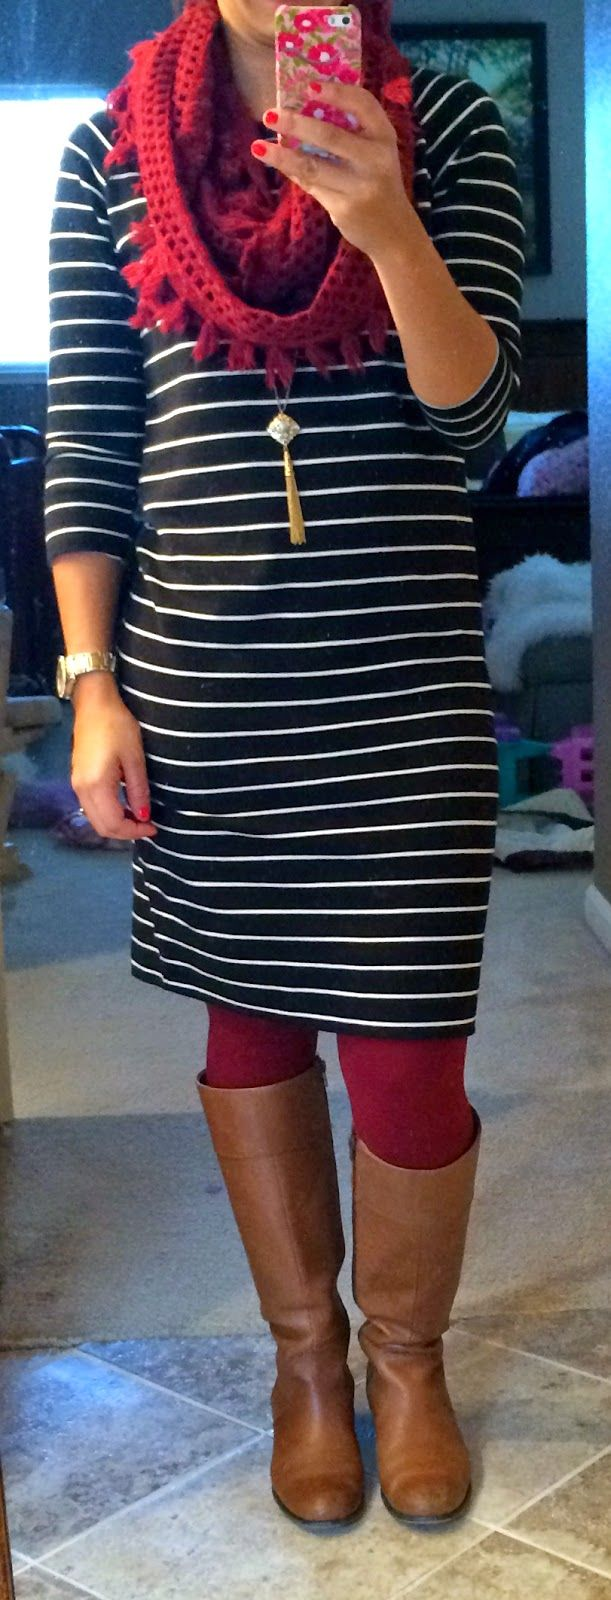 This black and white dress can be worn practically year-round! Here's the dress paired with colored tights and boots.